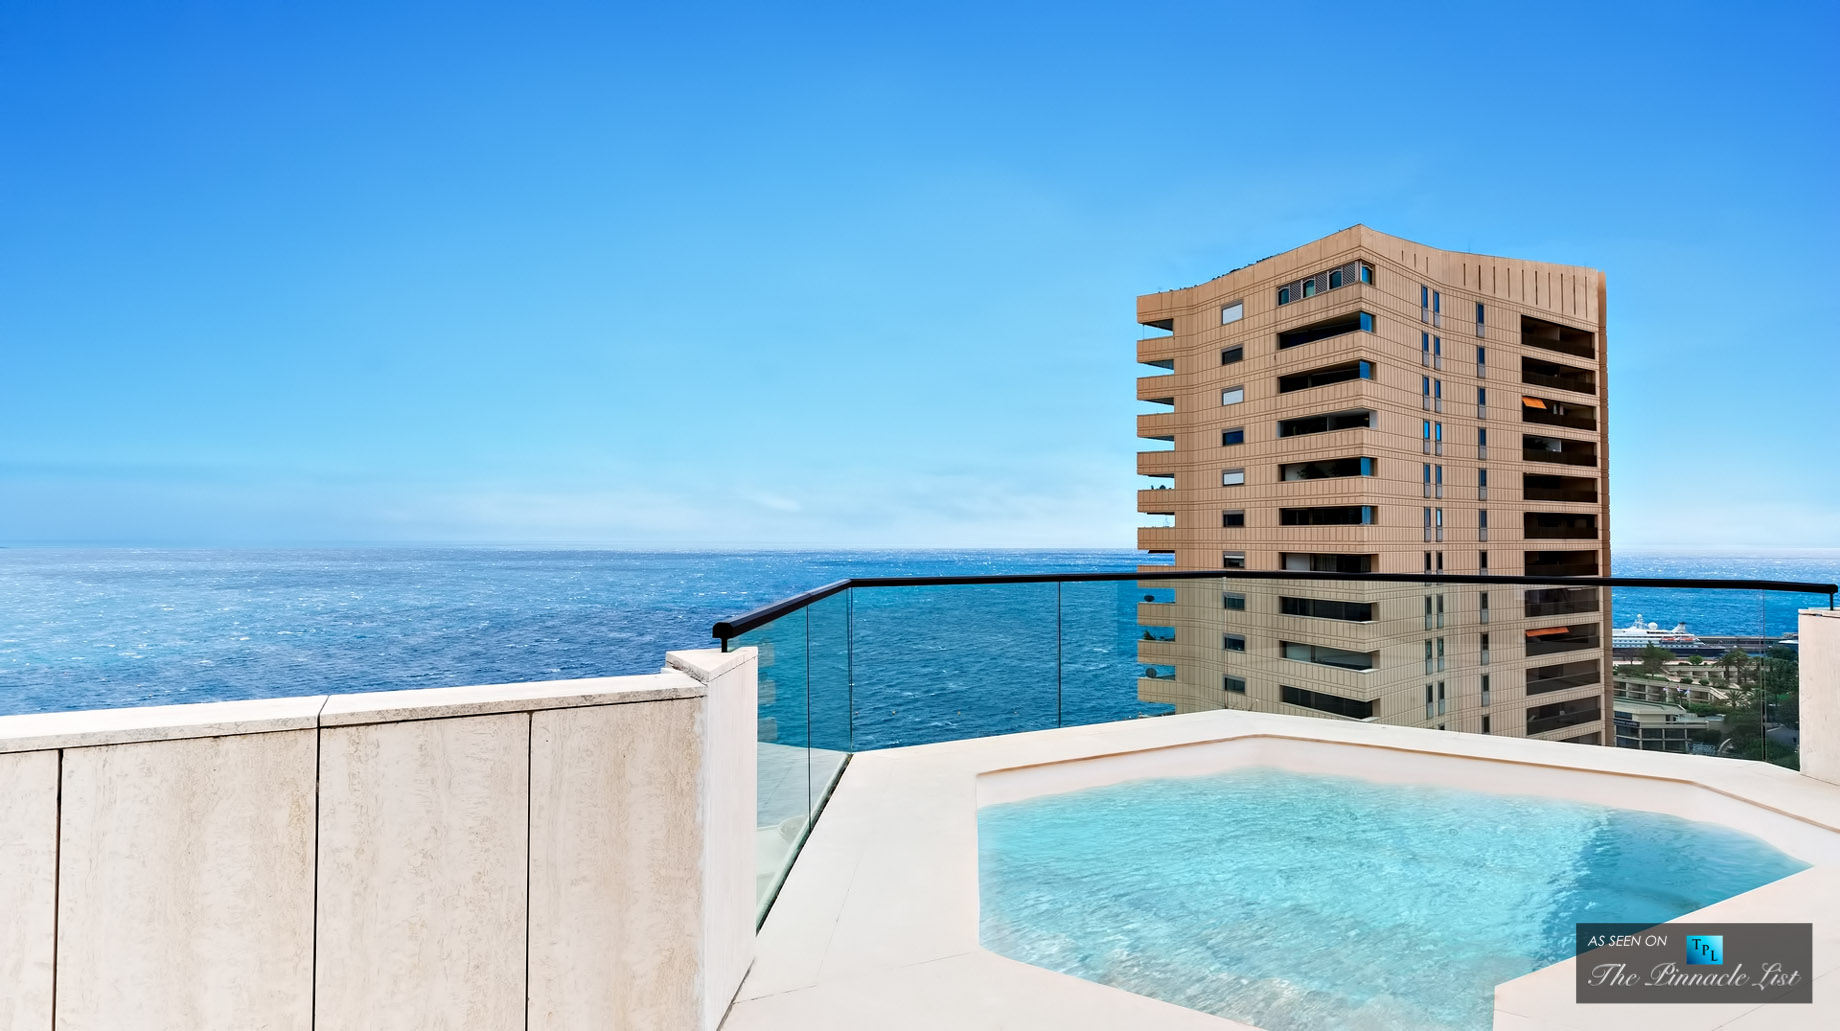 Penthouse with Private Pool - Rooms with a View - 4 Luxury Penthouses For Sale in Monaco